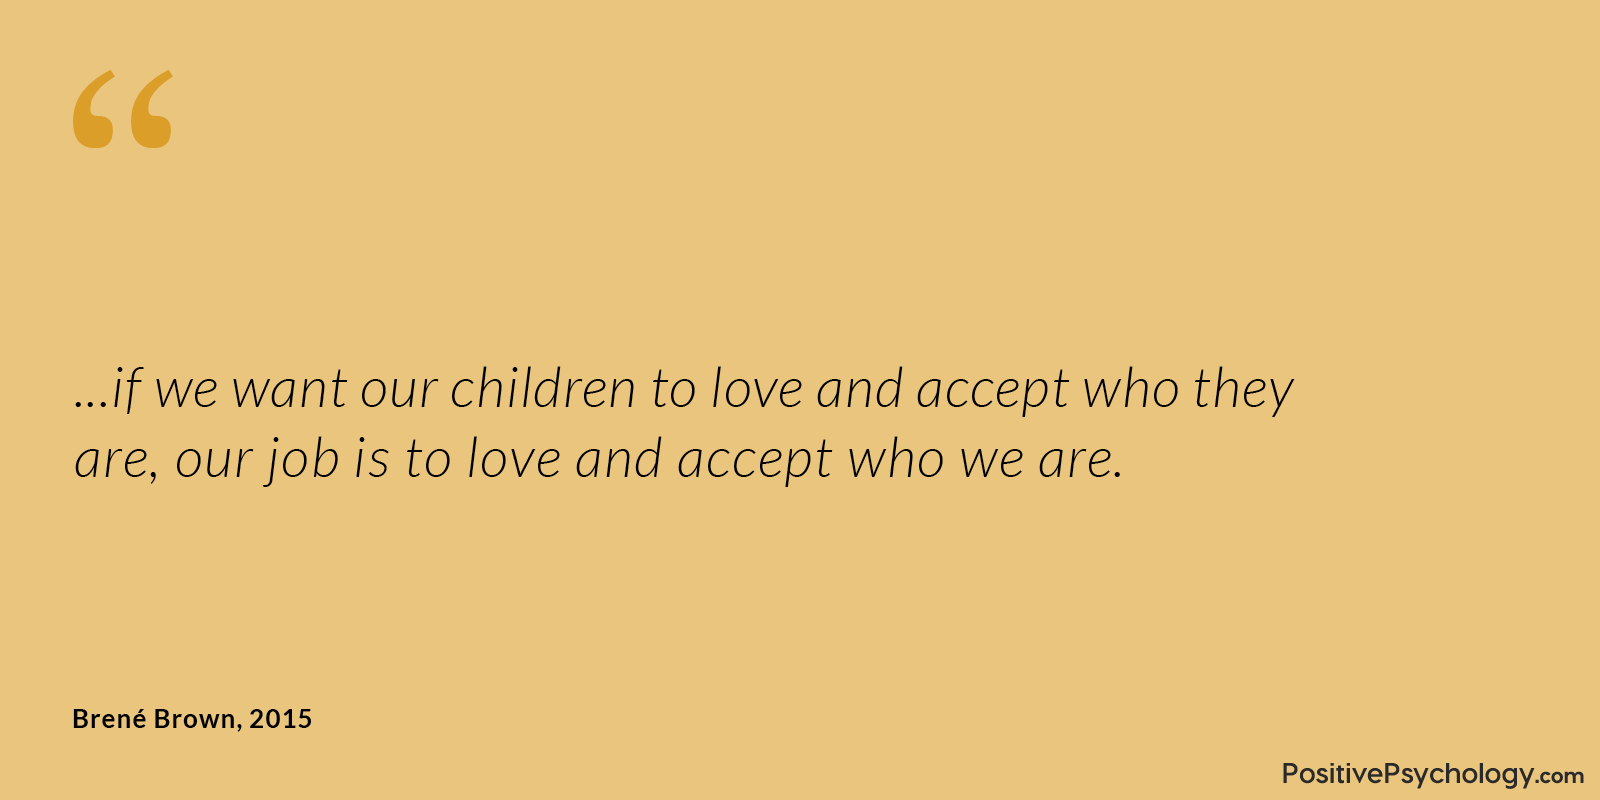 Accept Who We Are